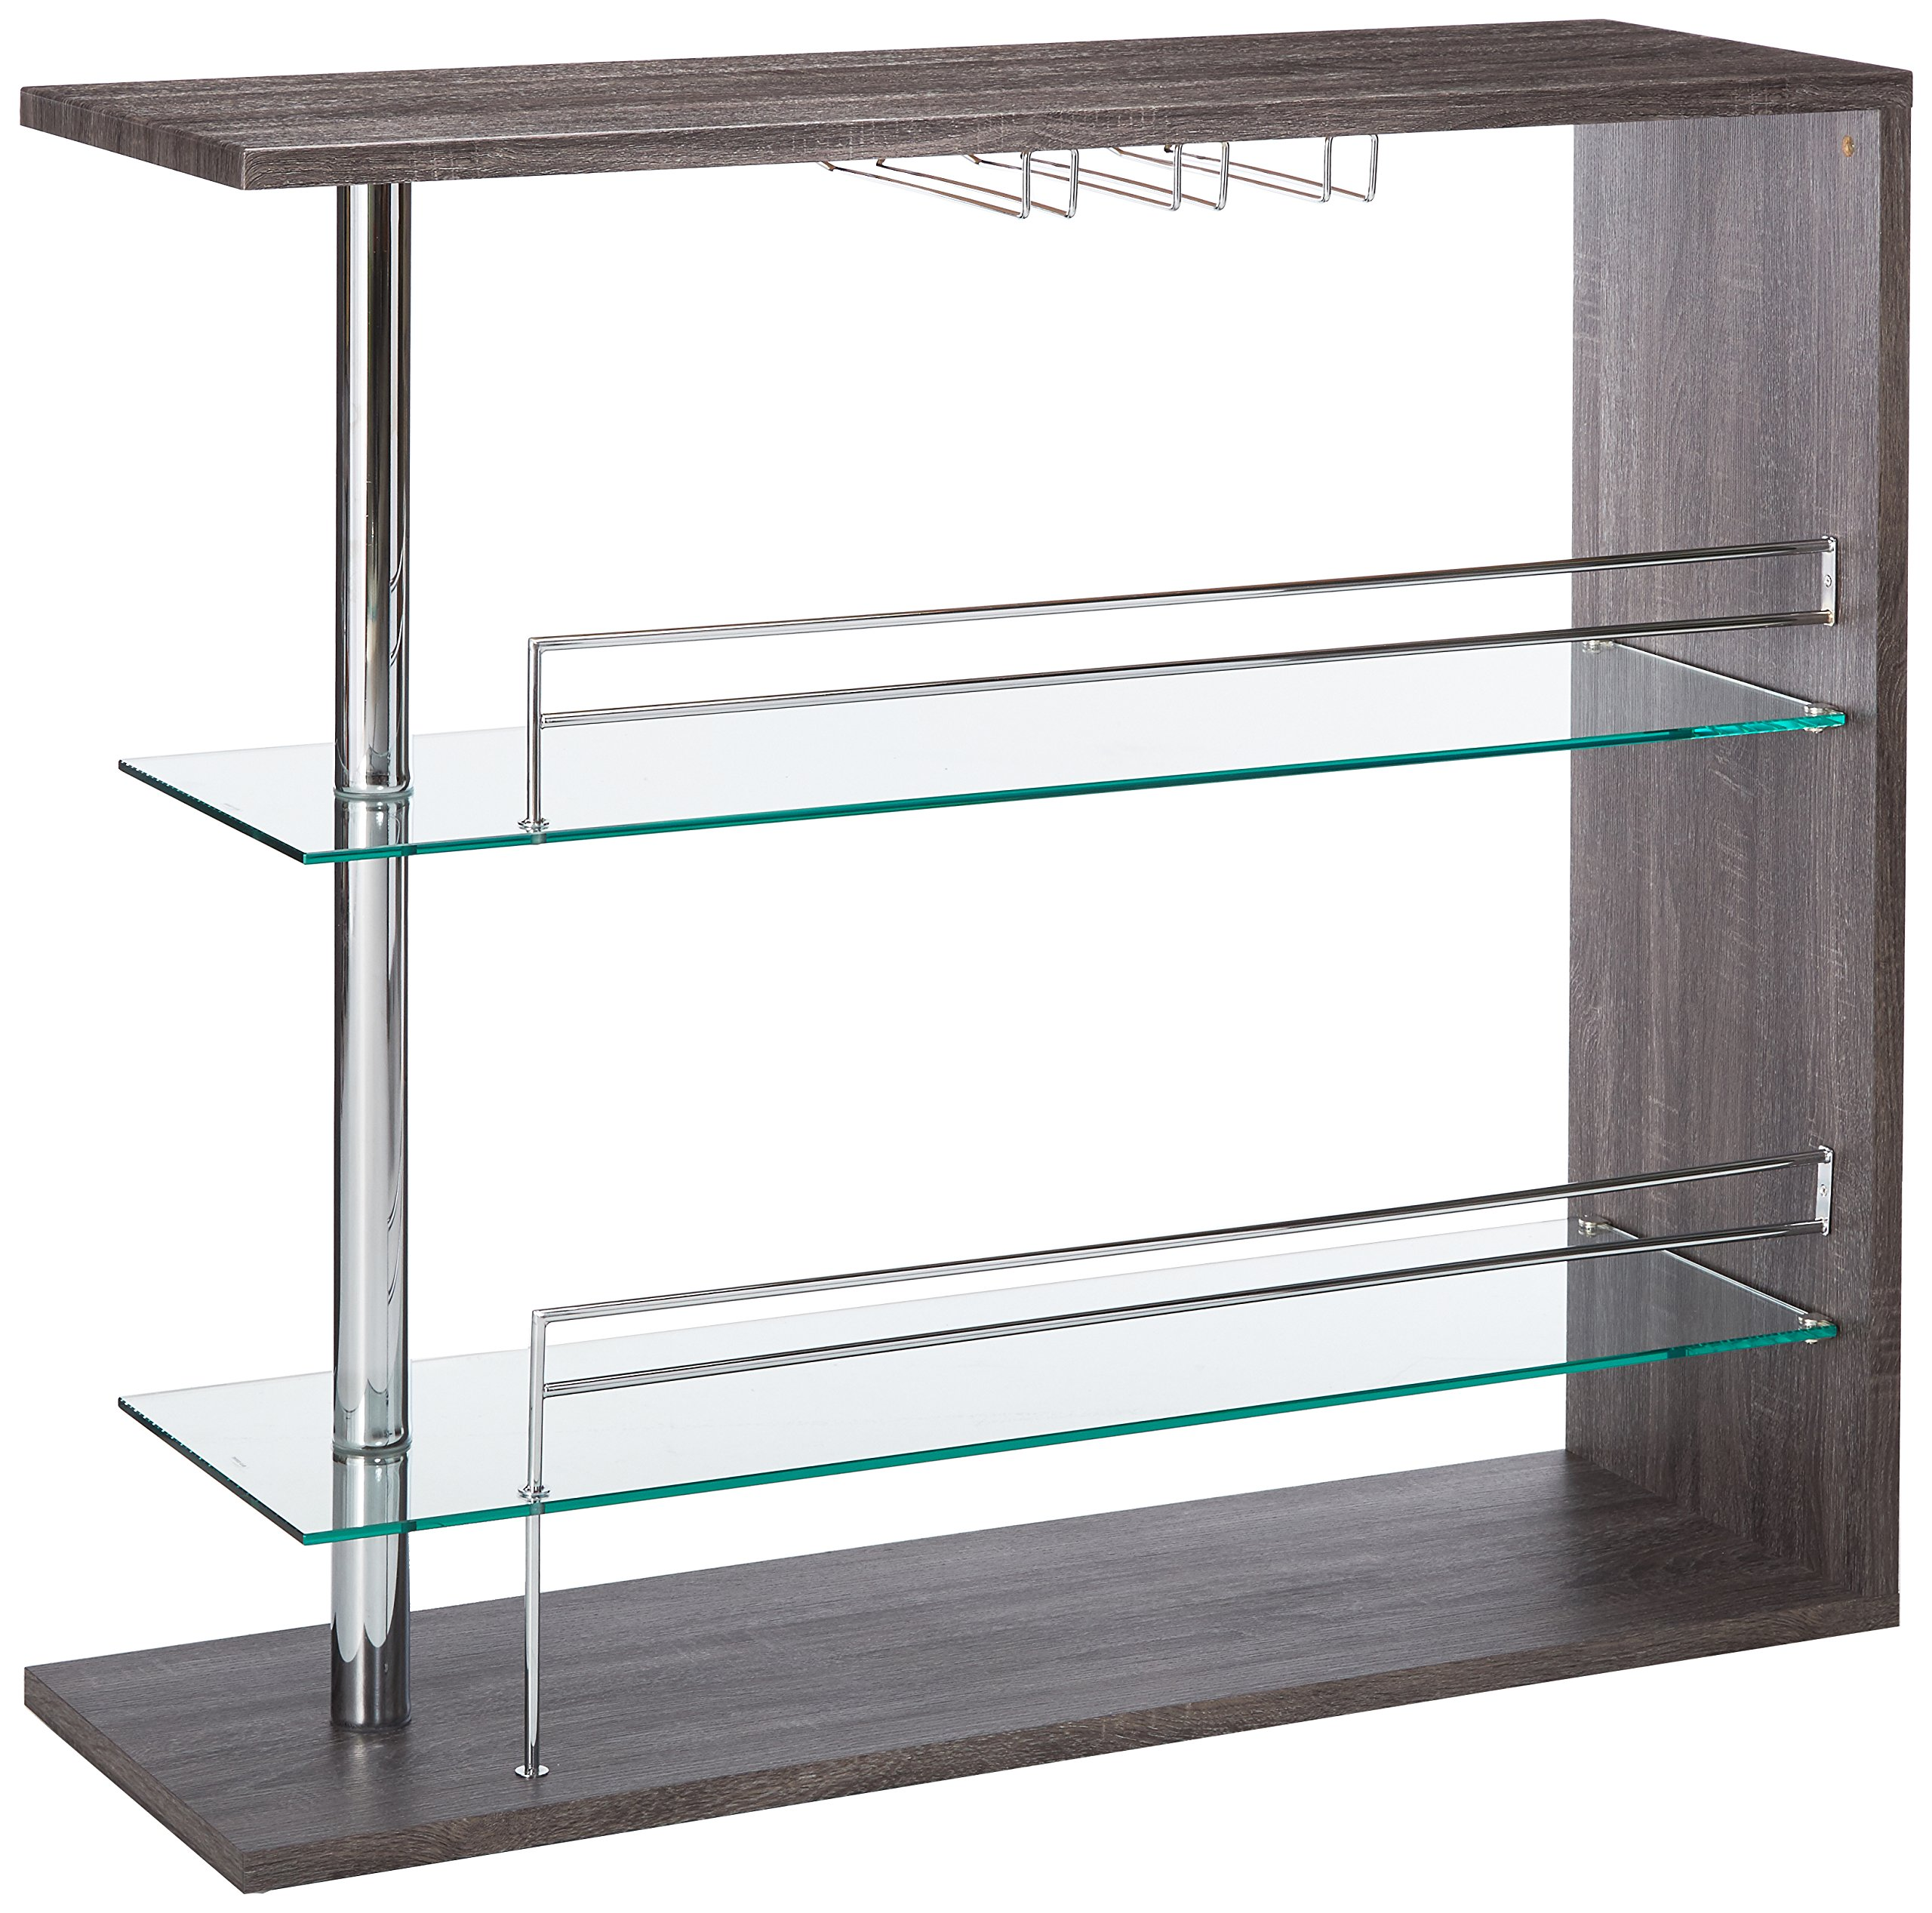 Rectangular 2-shelf Bar Unit with Wine Holder Weathered Grey, Chrome and Clear by Coaster Home Furnishings